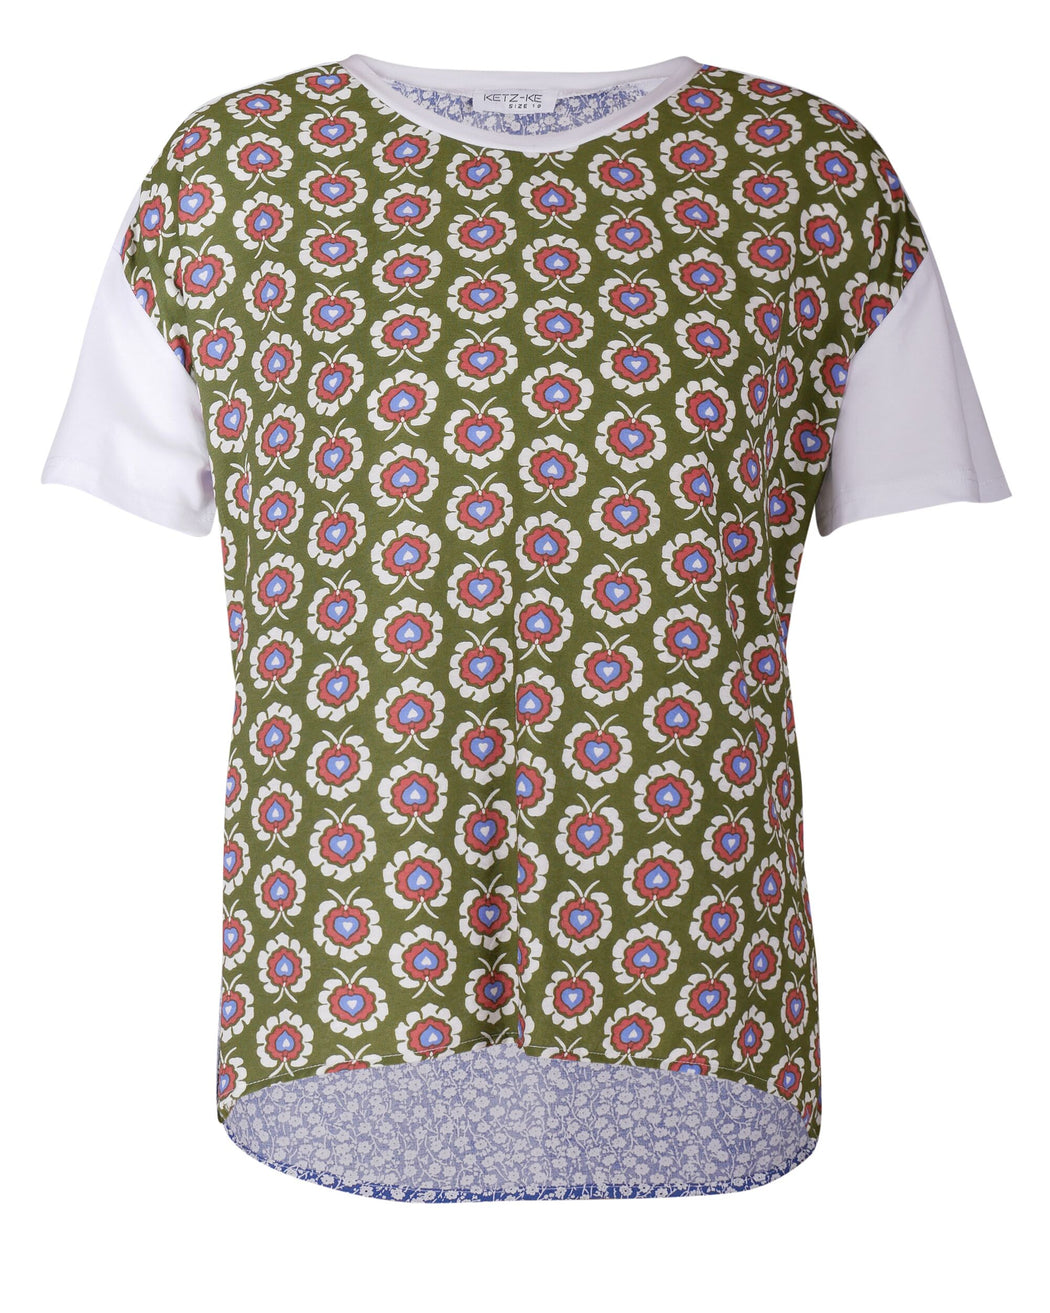 Ketz-ke Promise Tee Khaki | Shop Ketz-ke at Wallace and Gibbs